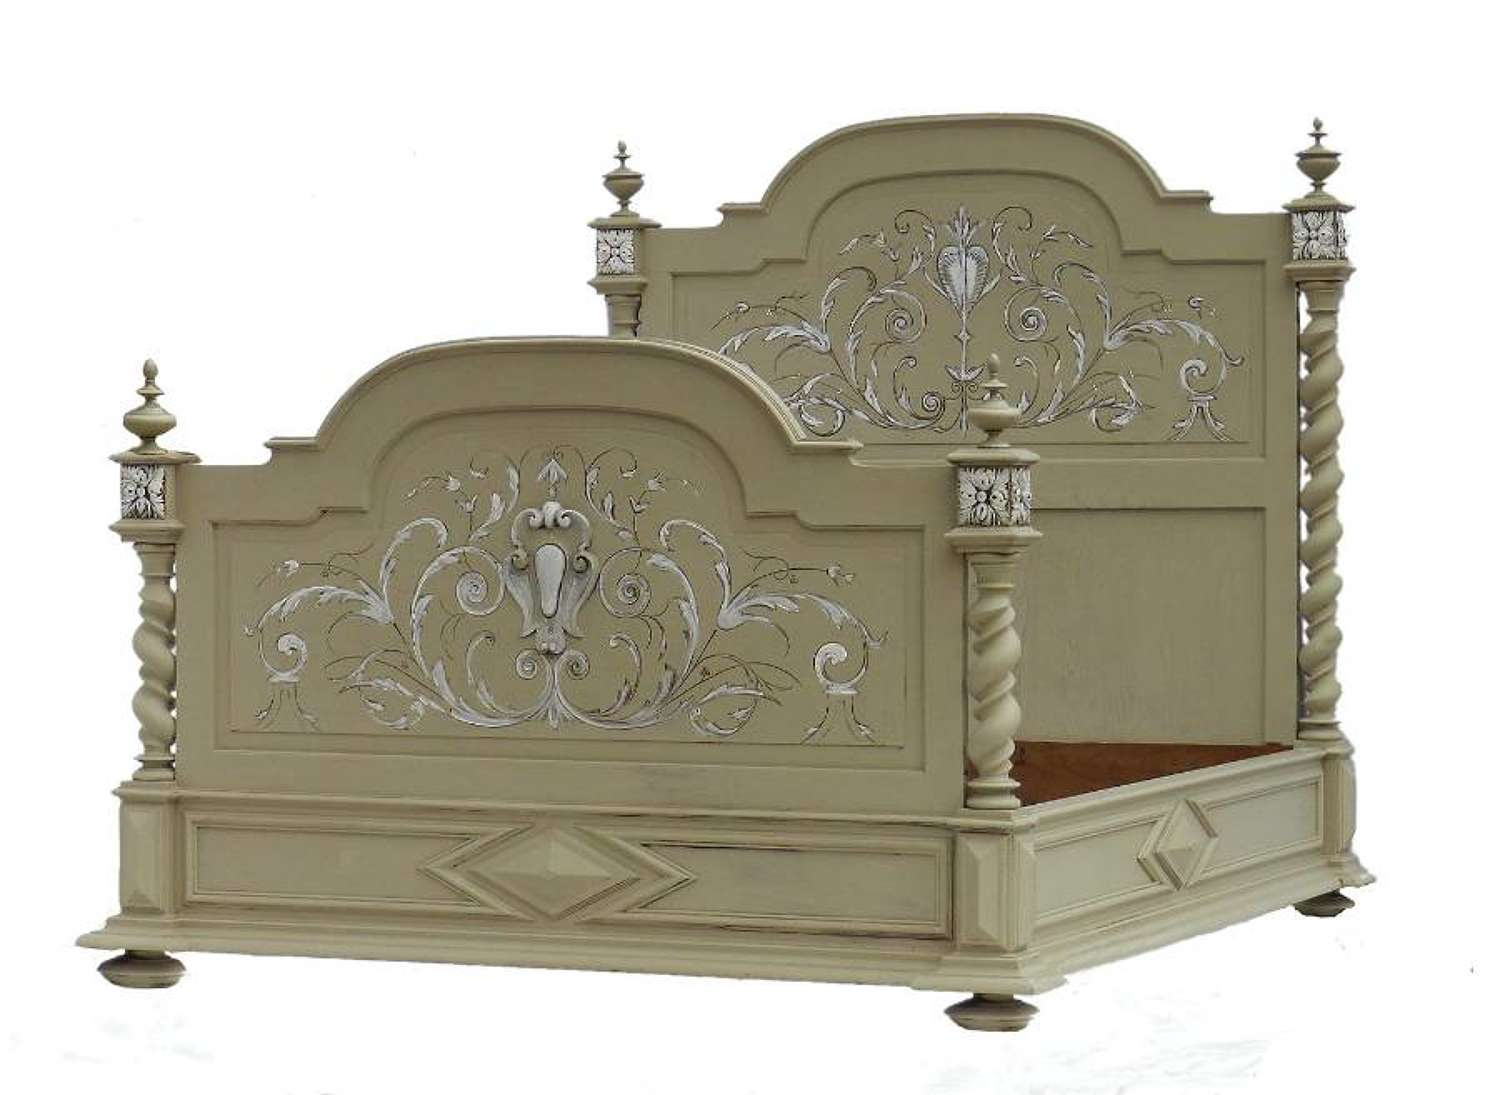 French Bed + Base UK King size US Queen 19th Century painted Louis